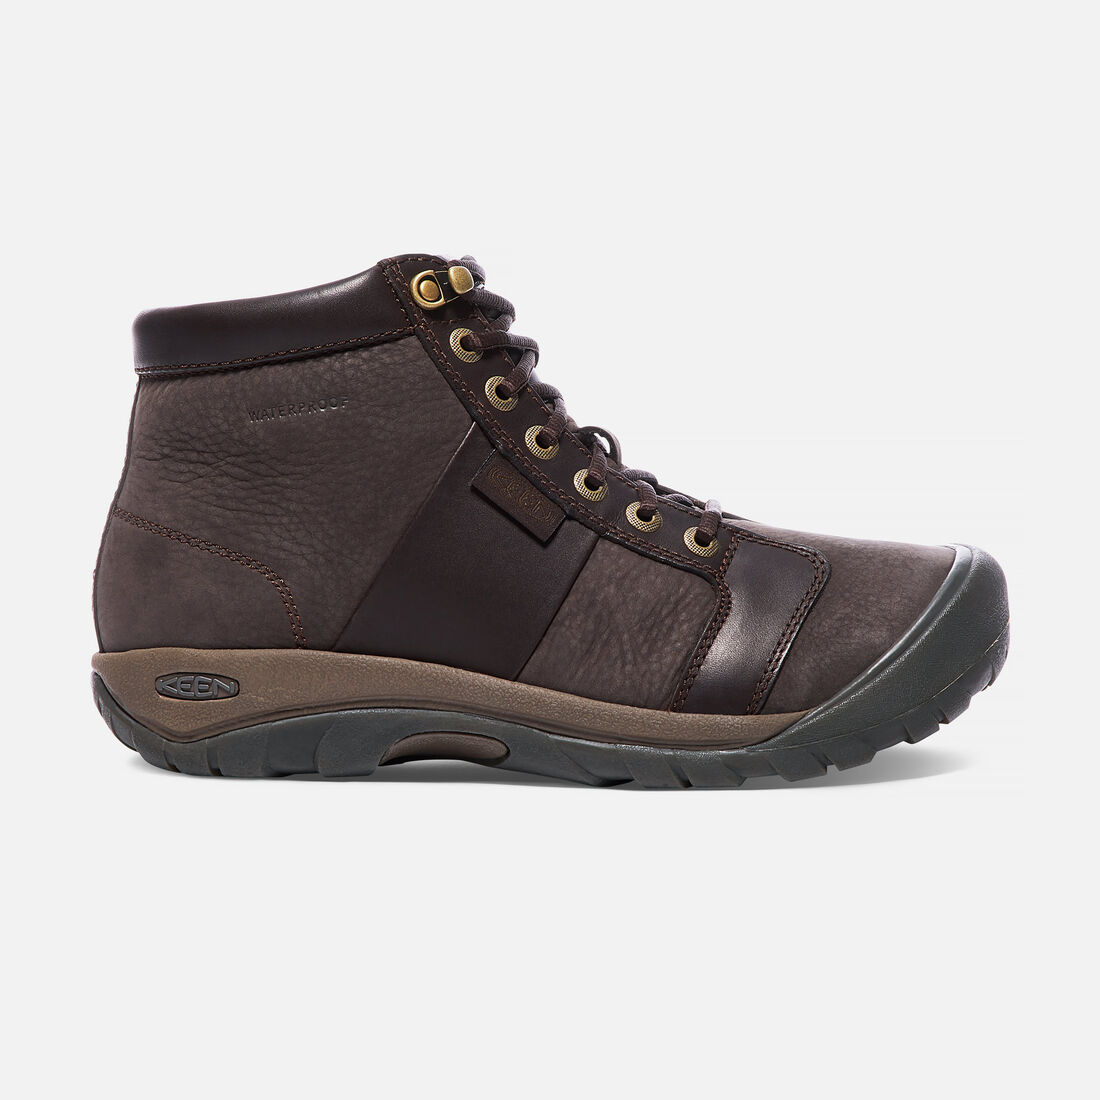 948388a6447 Men's AUSTIN Waterproof Mid - A handsome high-top for the office or ...